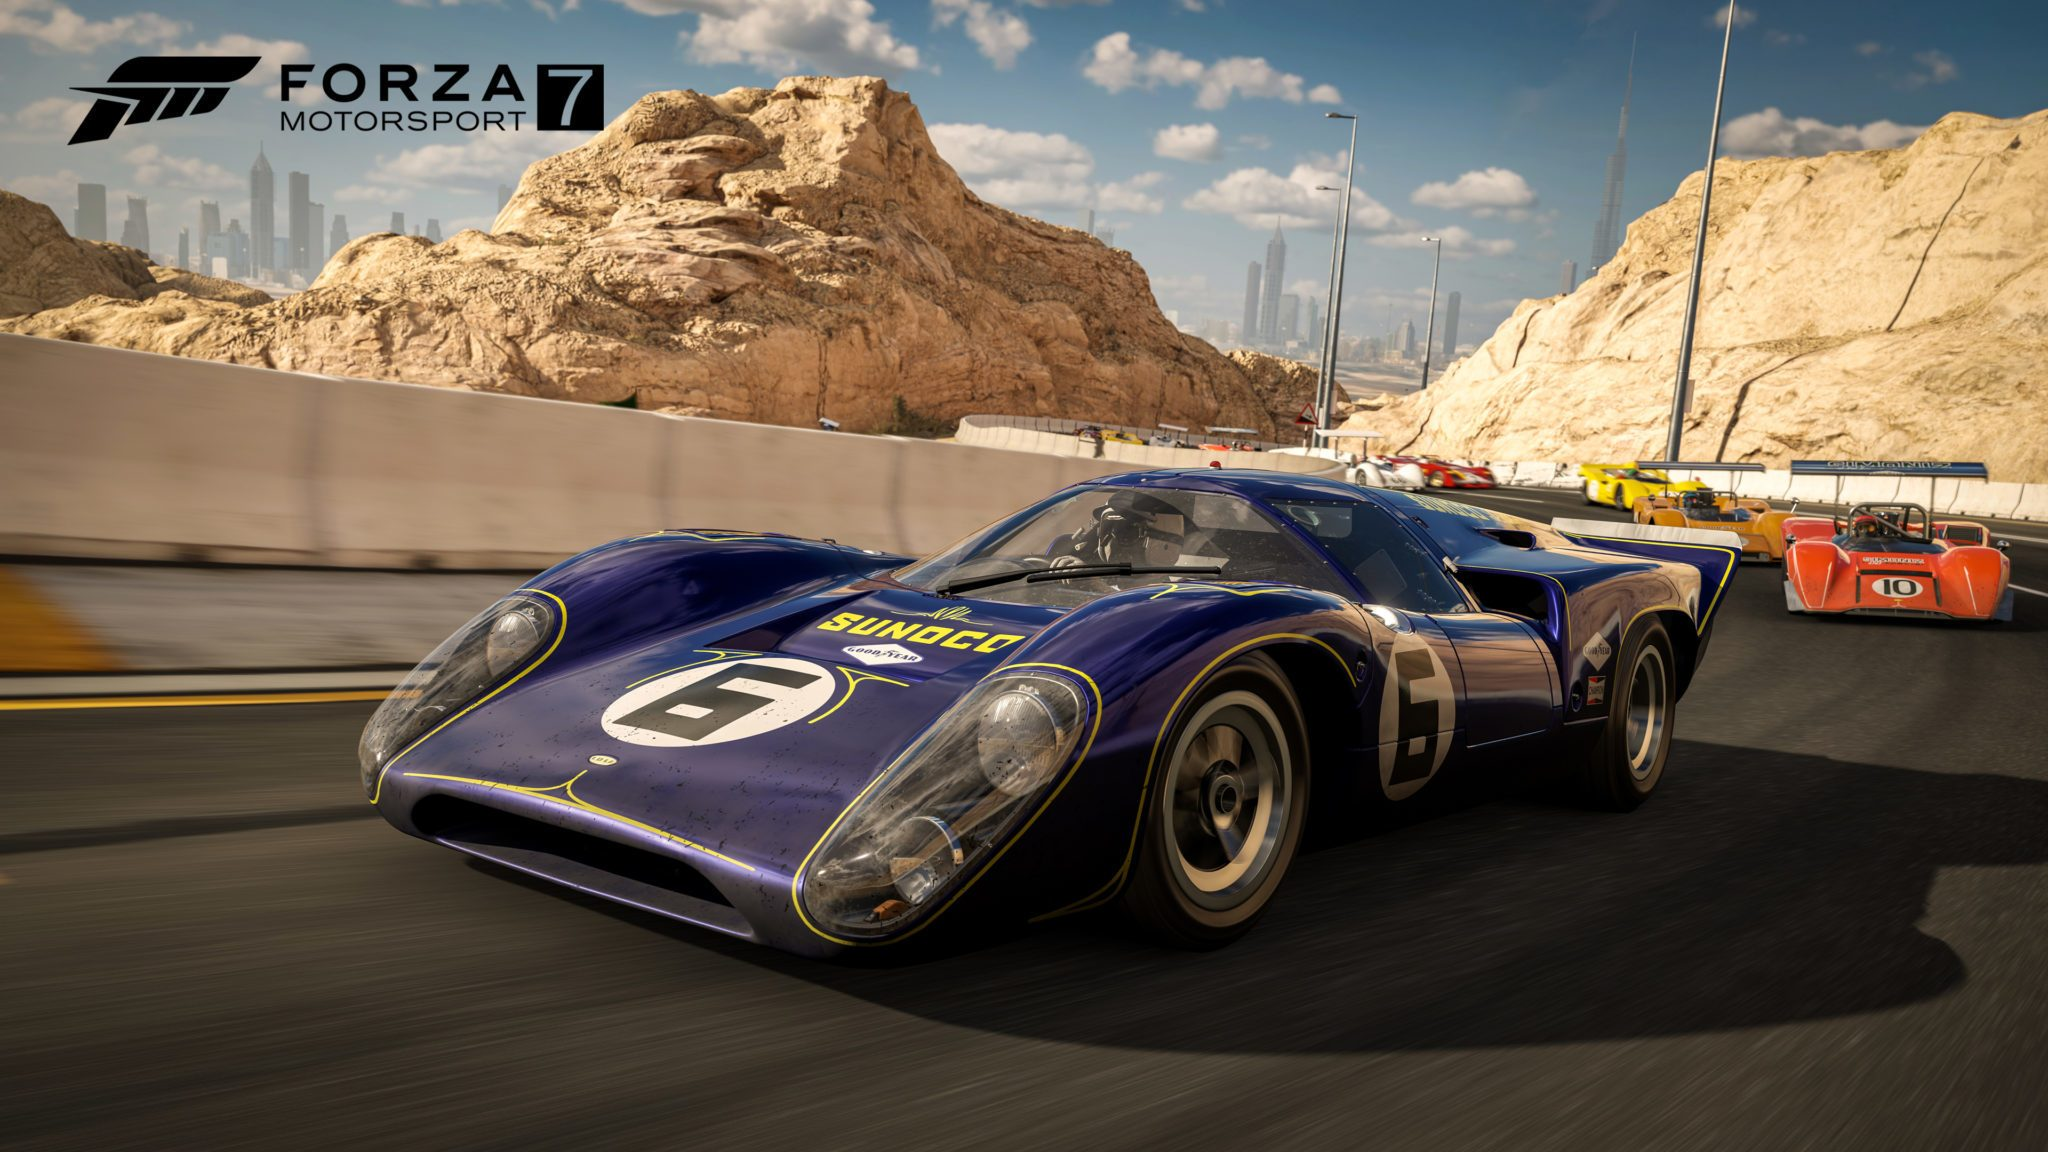 Forza Motorsport 7 Pc Supported Peripheral List Released